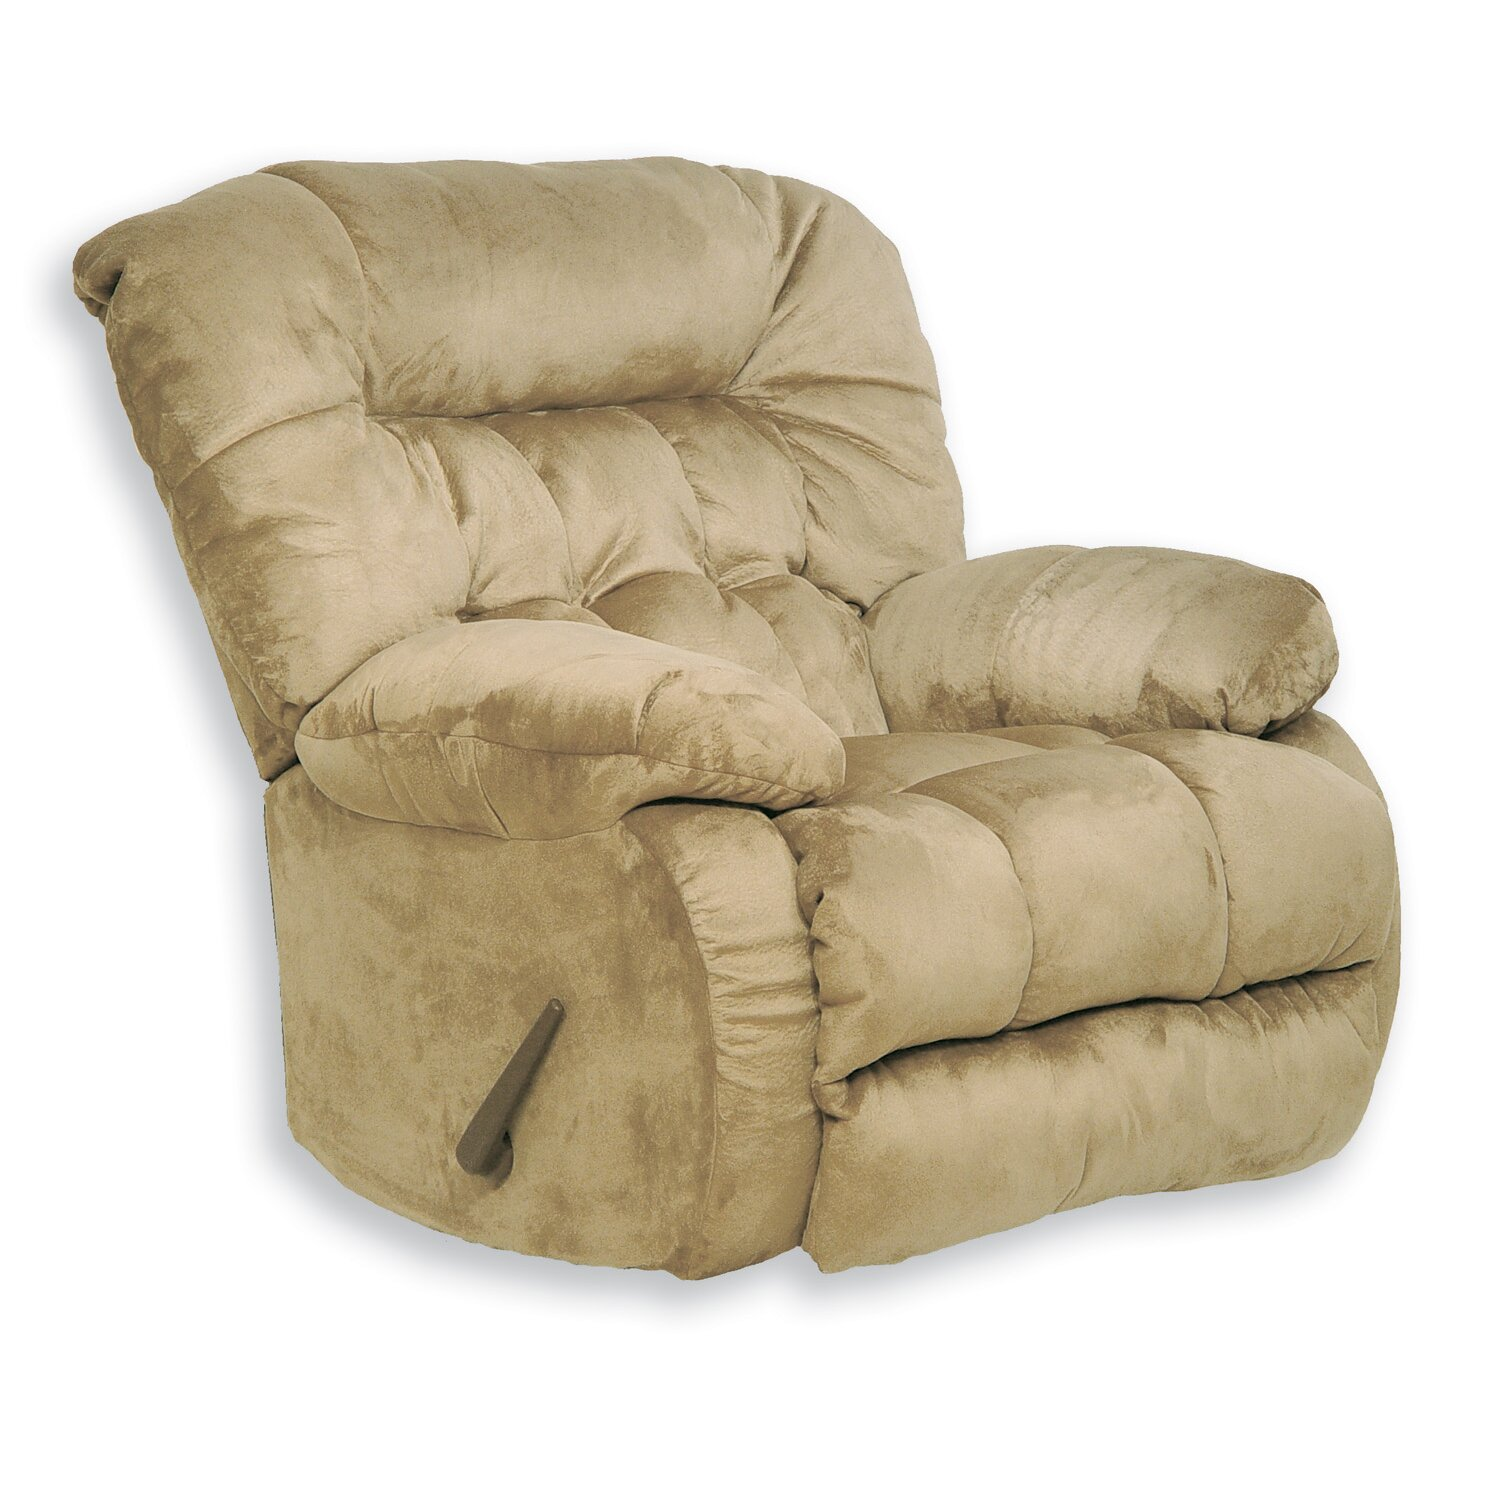 Catnapper teddy bear chaise recliner reviews wayfair for Catnapper reclining chaise